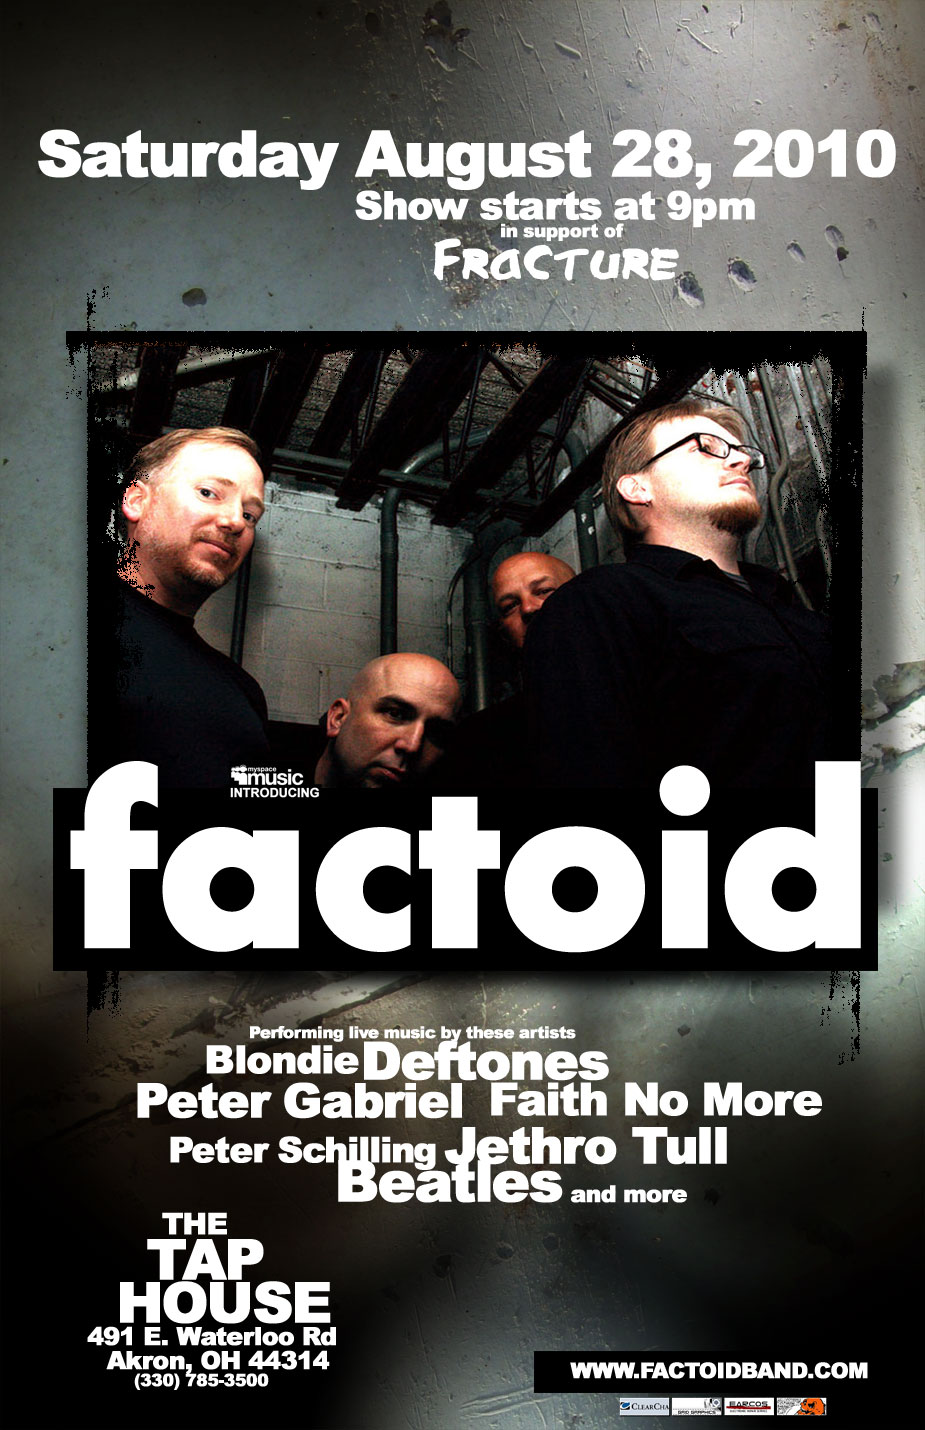 factoid_poster_tap_house